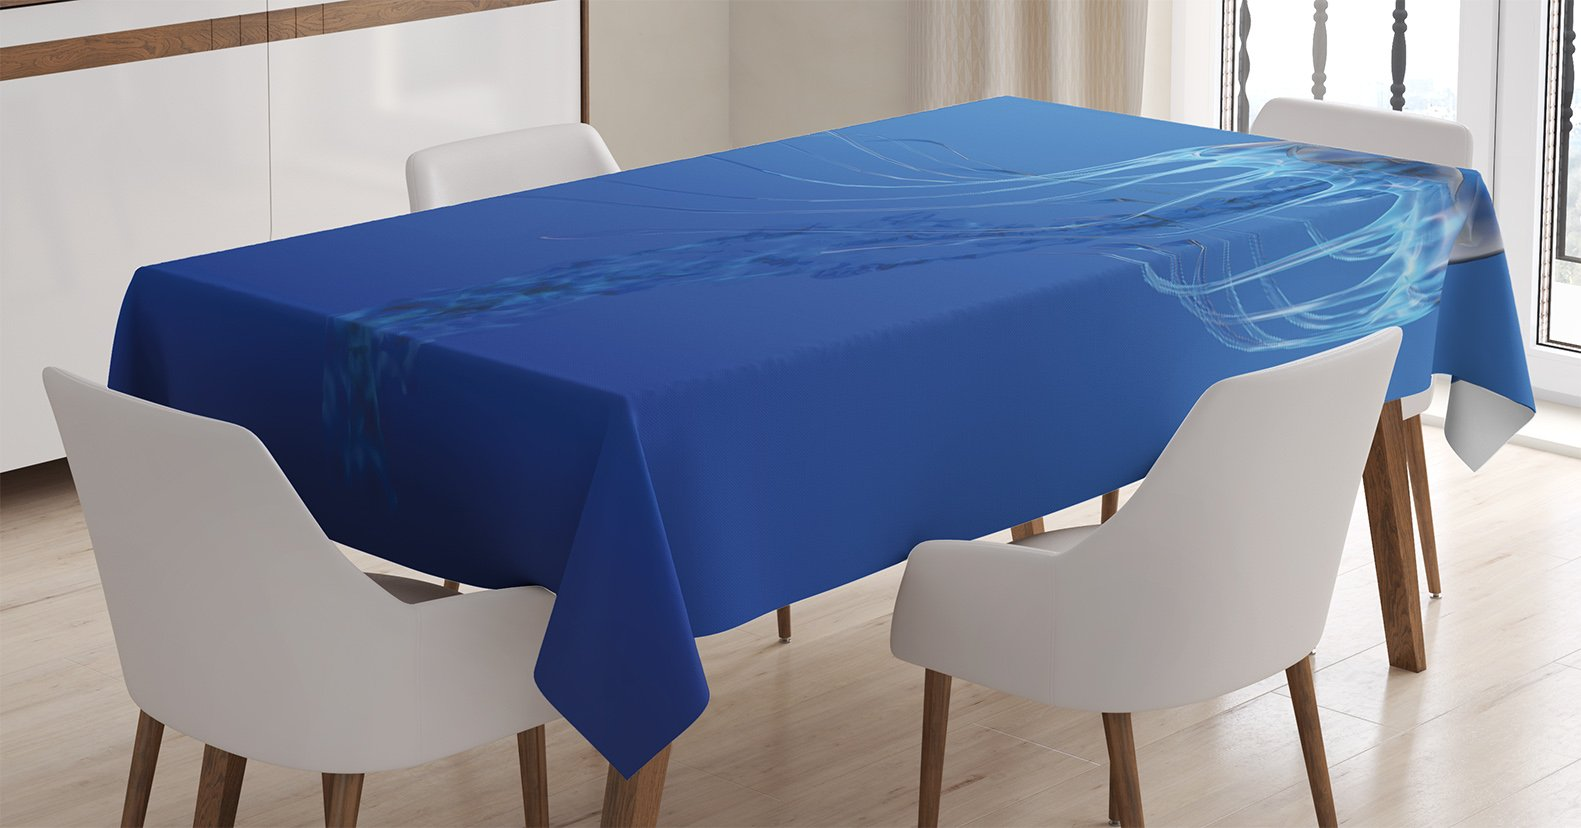 Ambesonne Jellyfish Tablecloth, Blue Spotted Jelly Fish Aquarium Life Marine Animals Ocean Predator in Deep Water Aquatic, Dining Room Kitchen Rectangular Table Cover, 52 X 70 inches